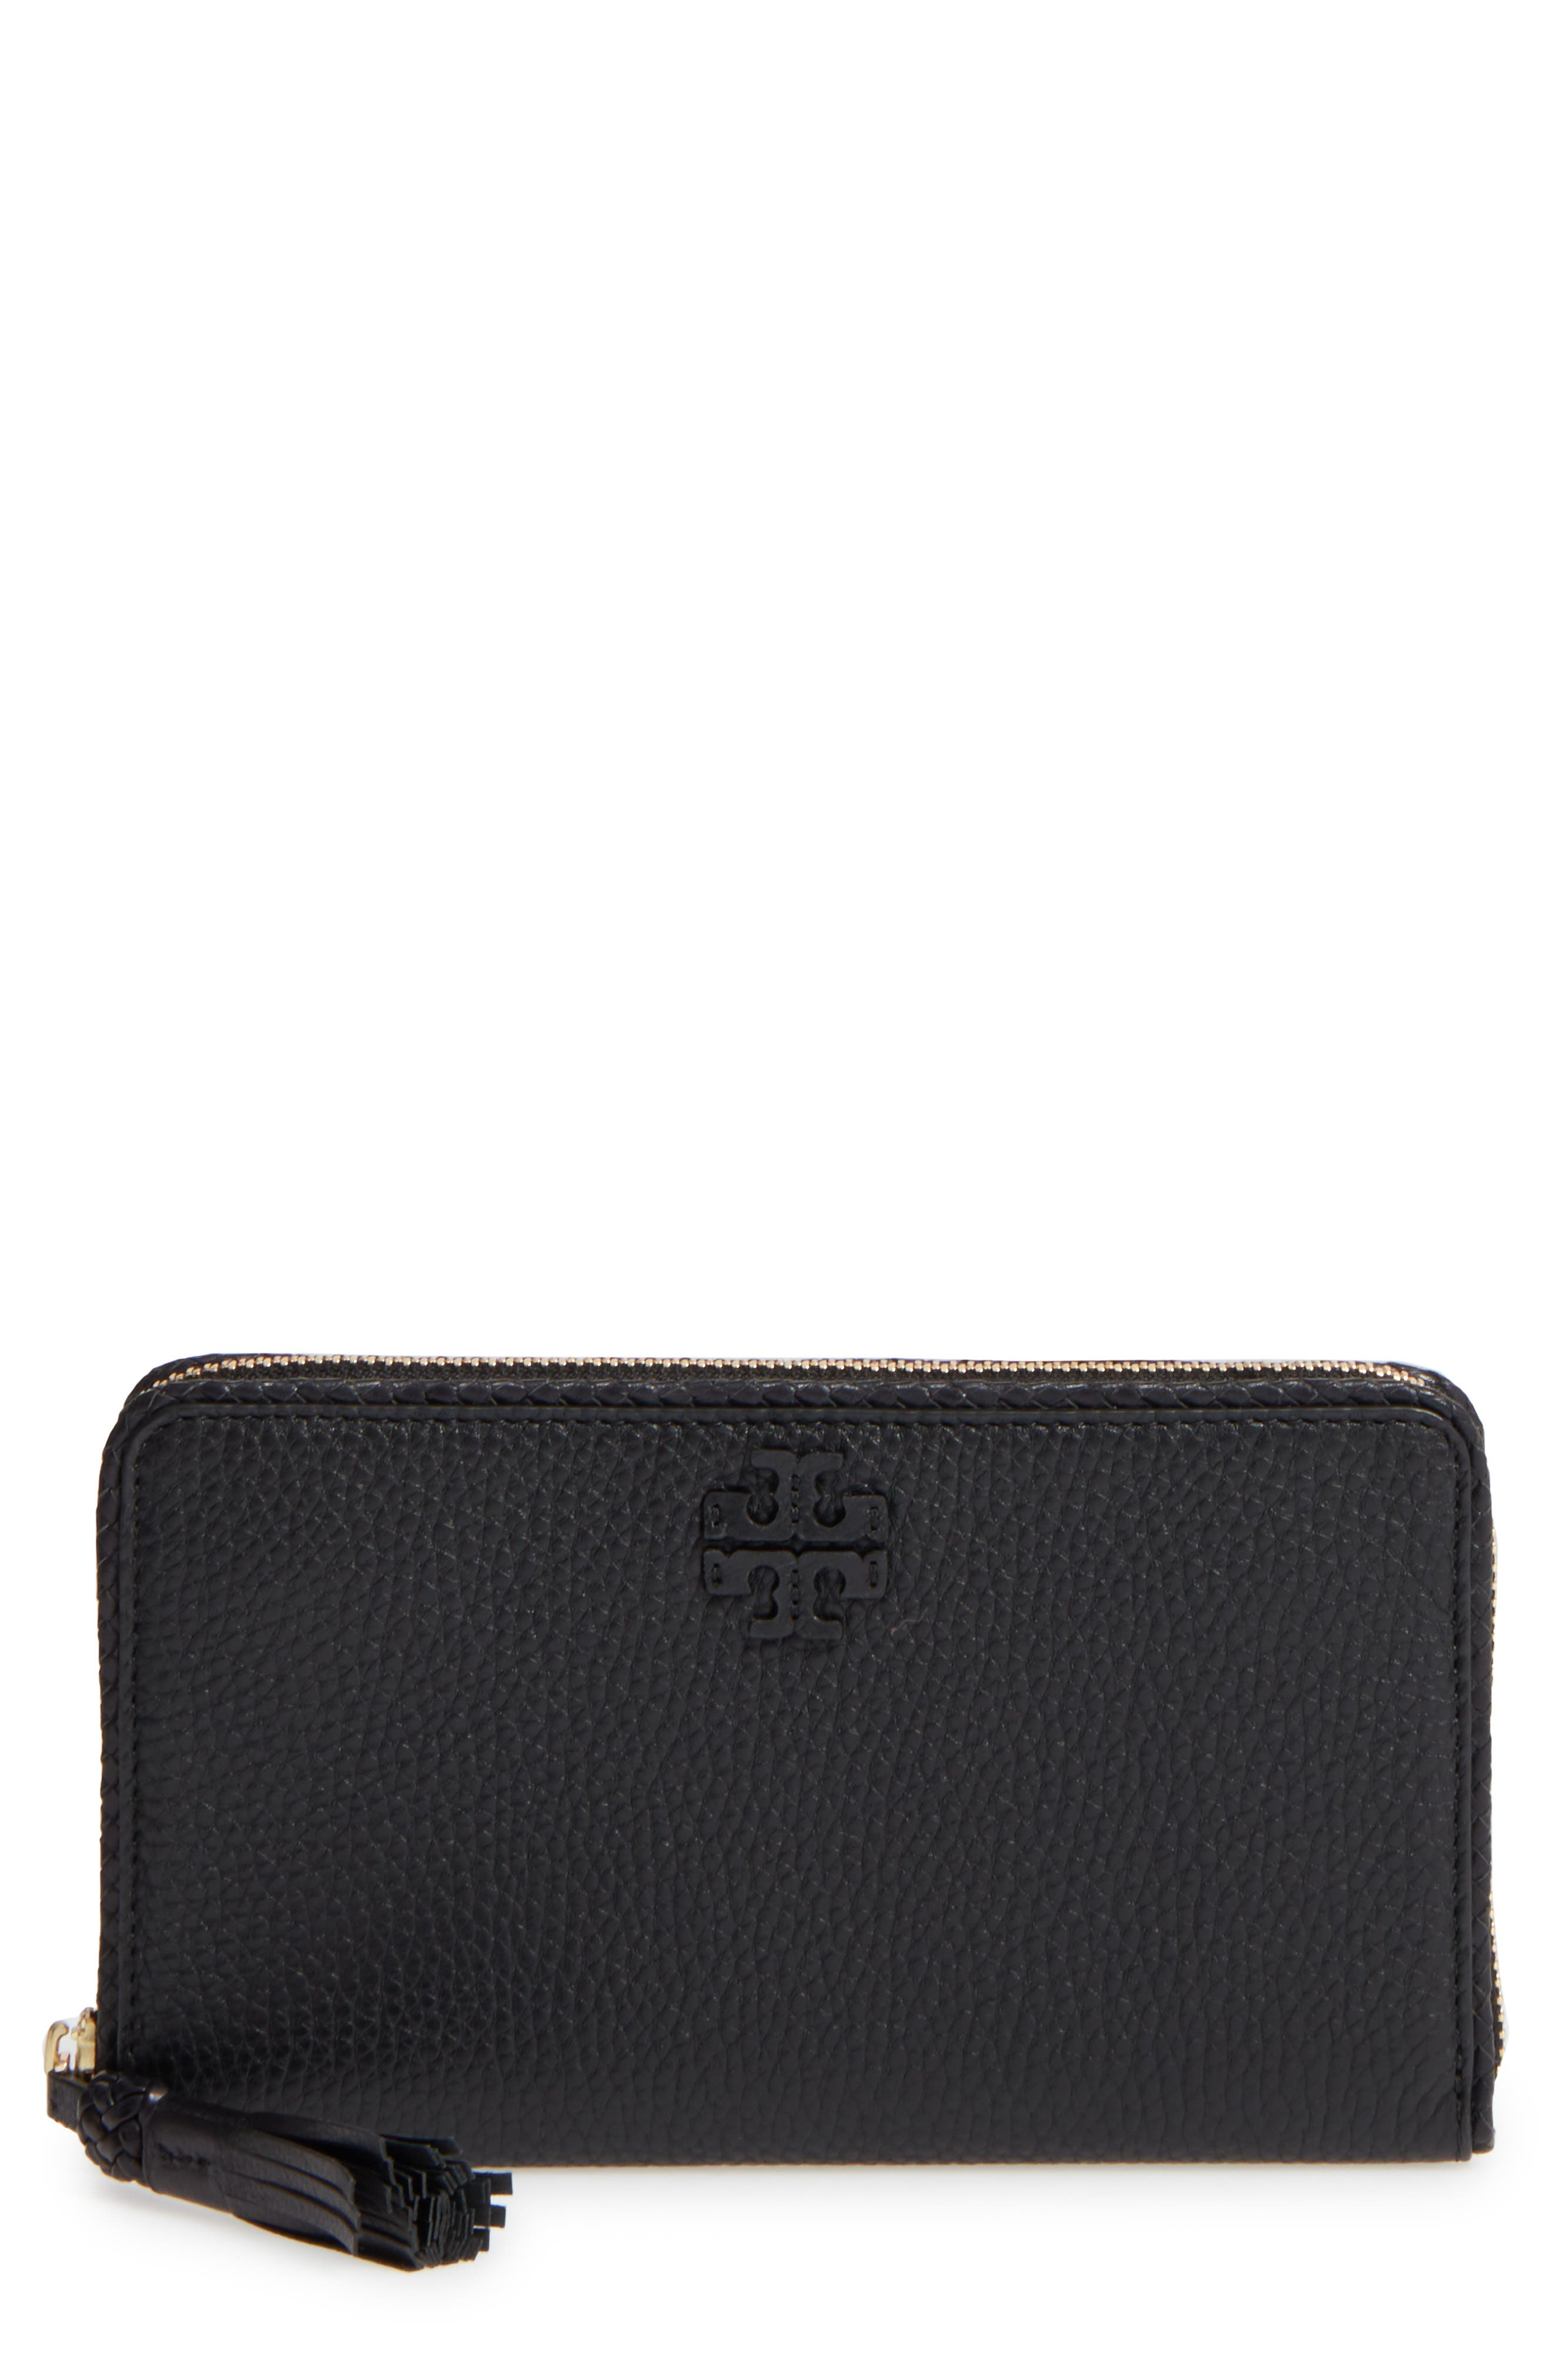 Tory Burch Continental Leather Wallet